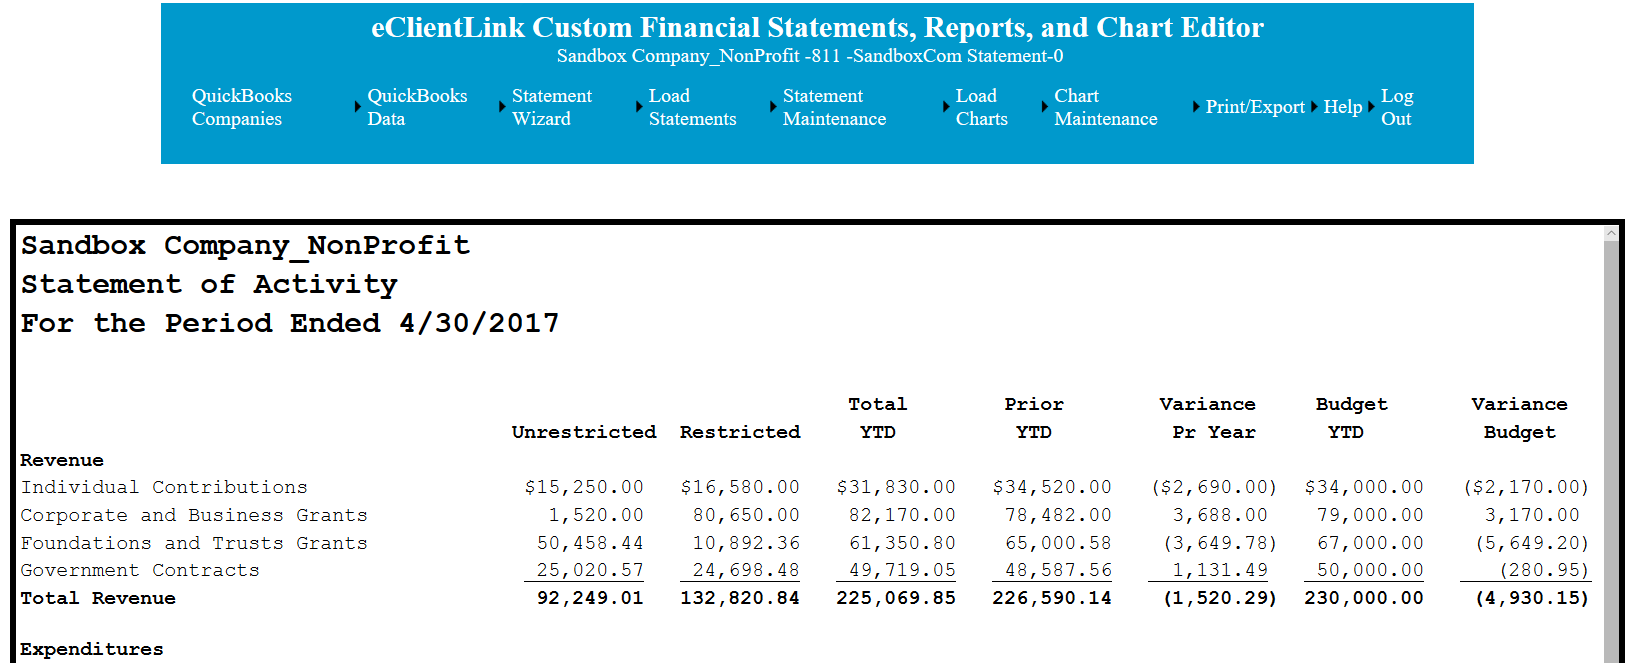 Sample eClientLink custom non-profit financial statement.